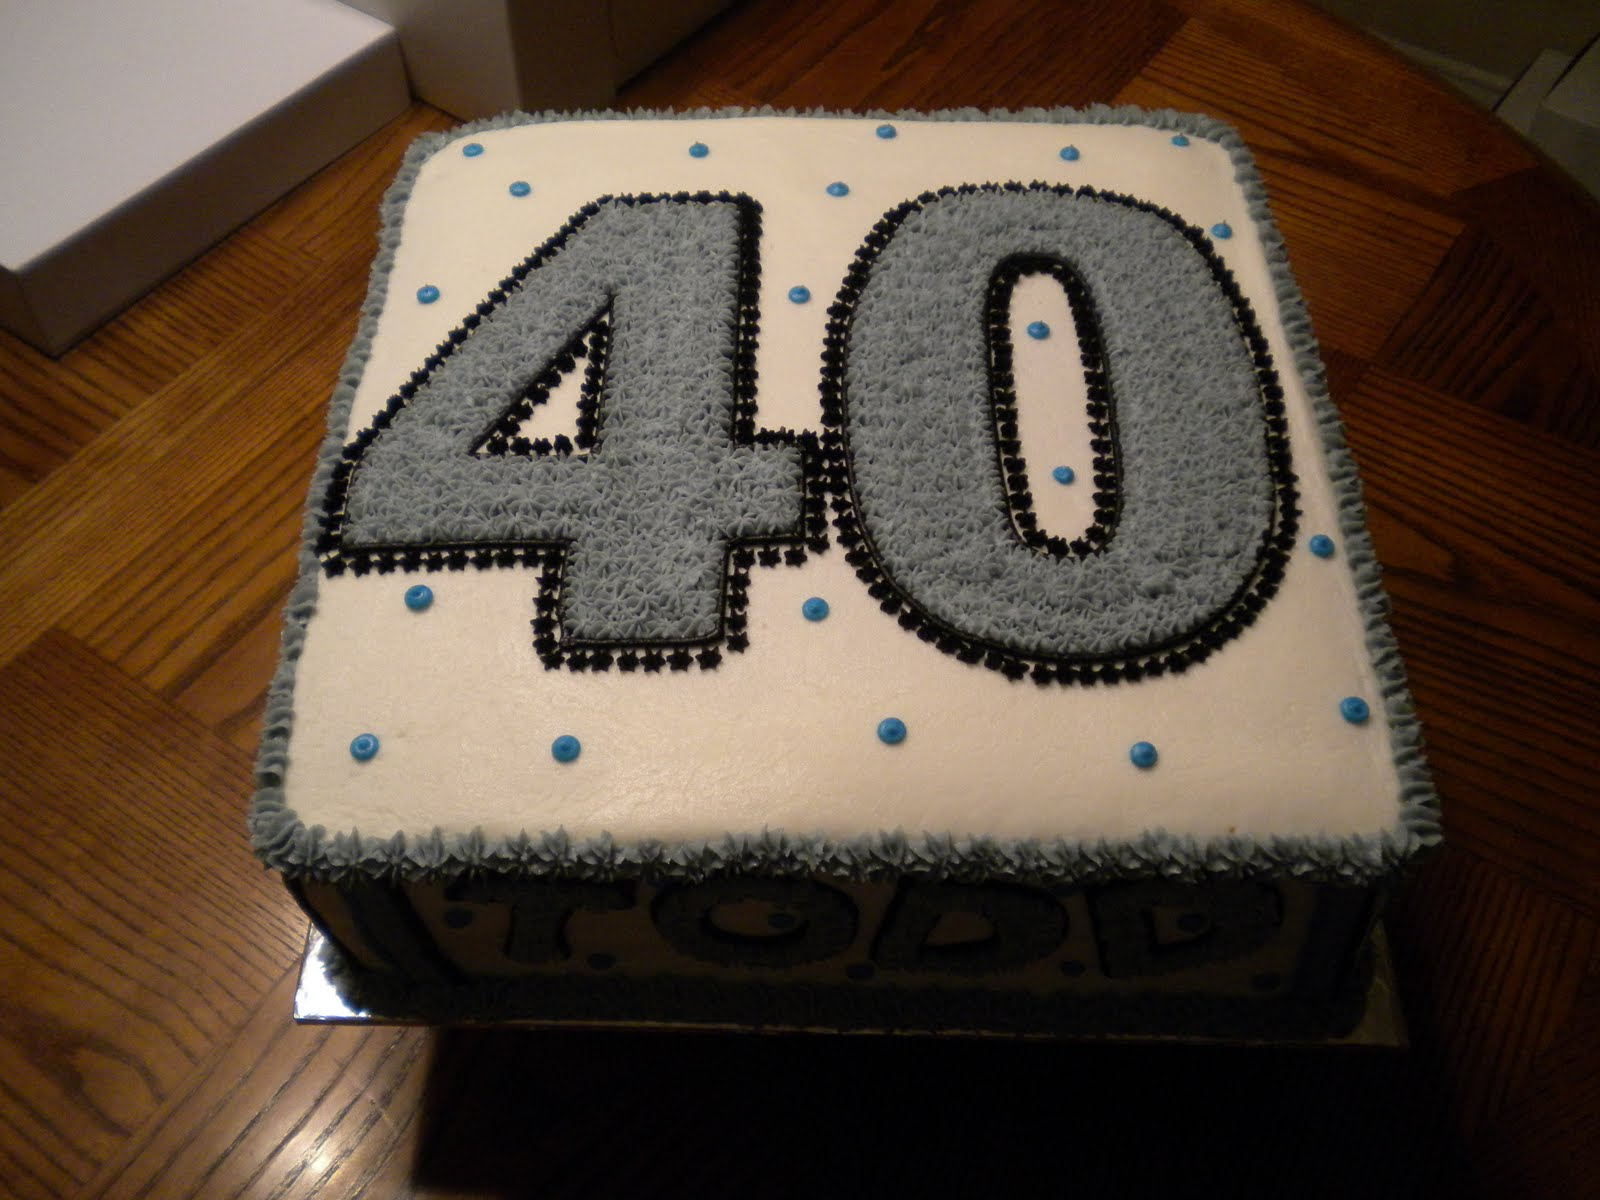 This was a cake for Todd Conway's 40th Birthday. It was a 12 inch ...